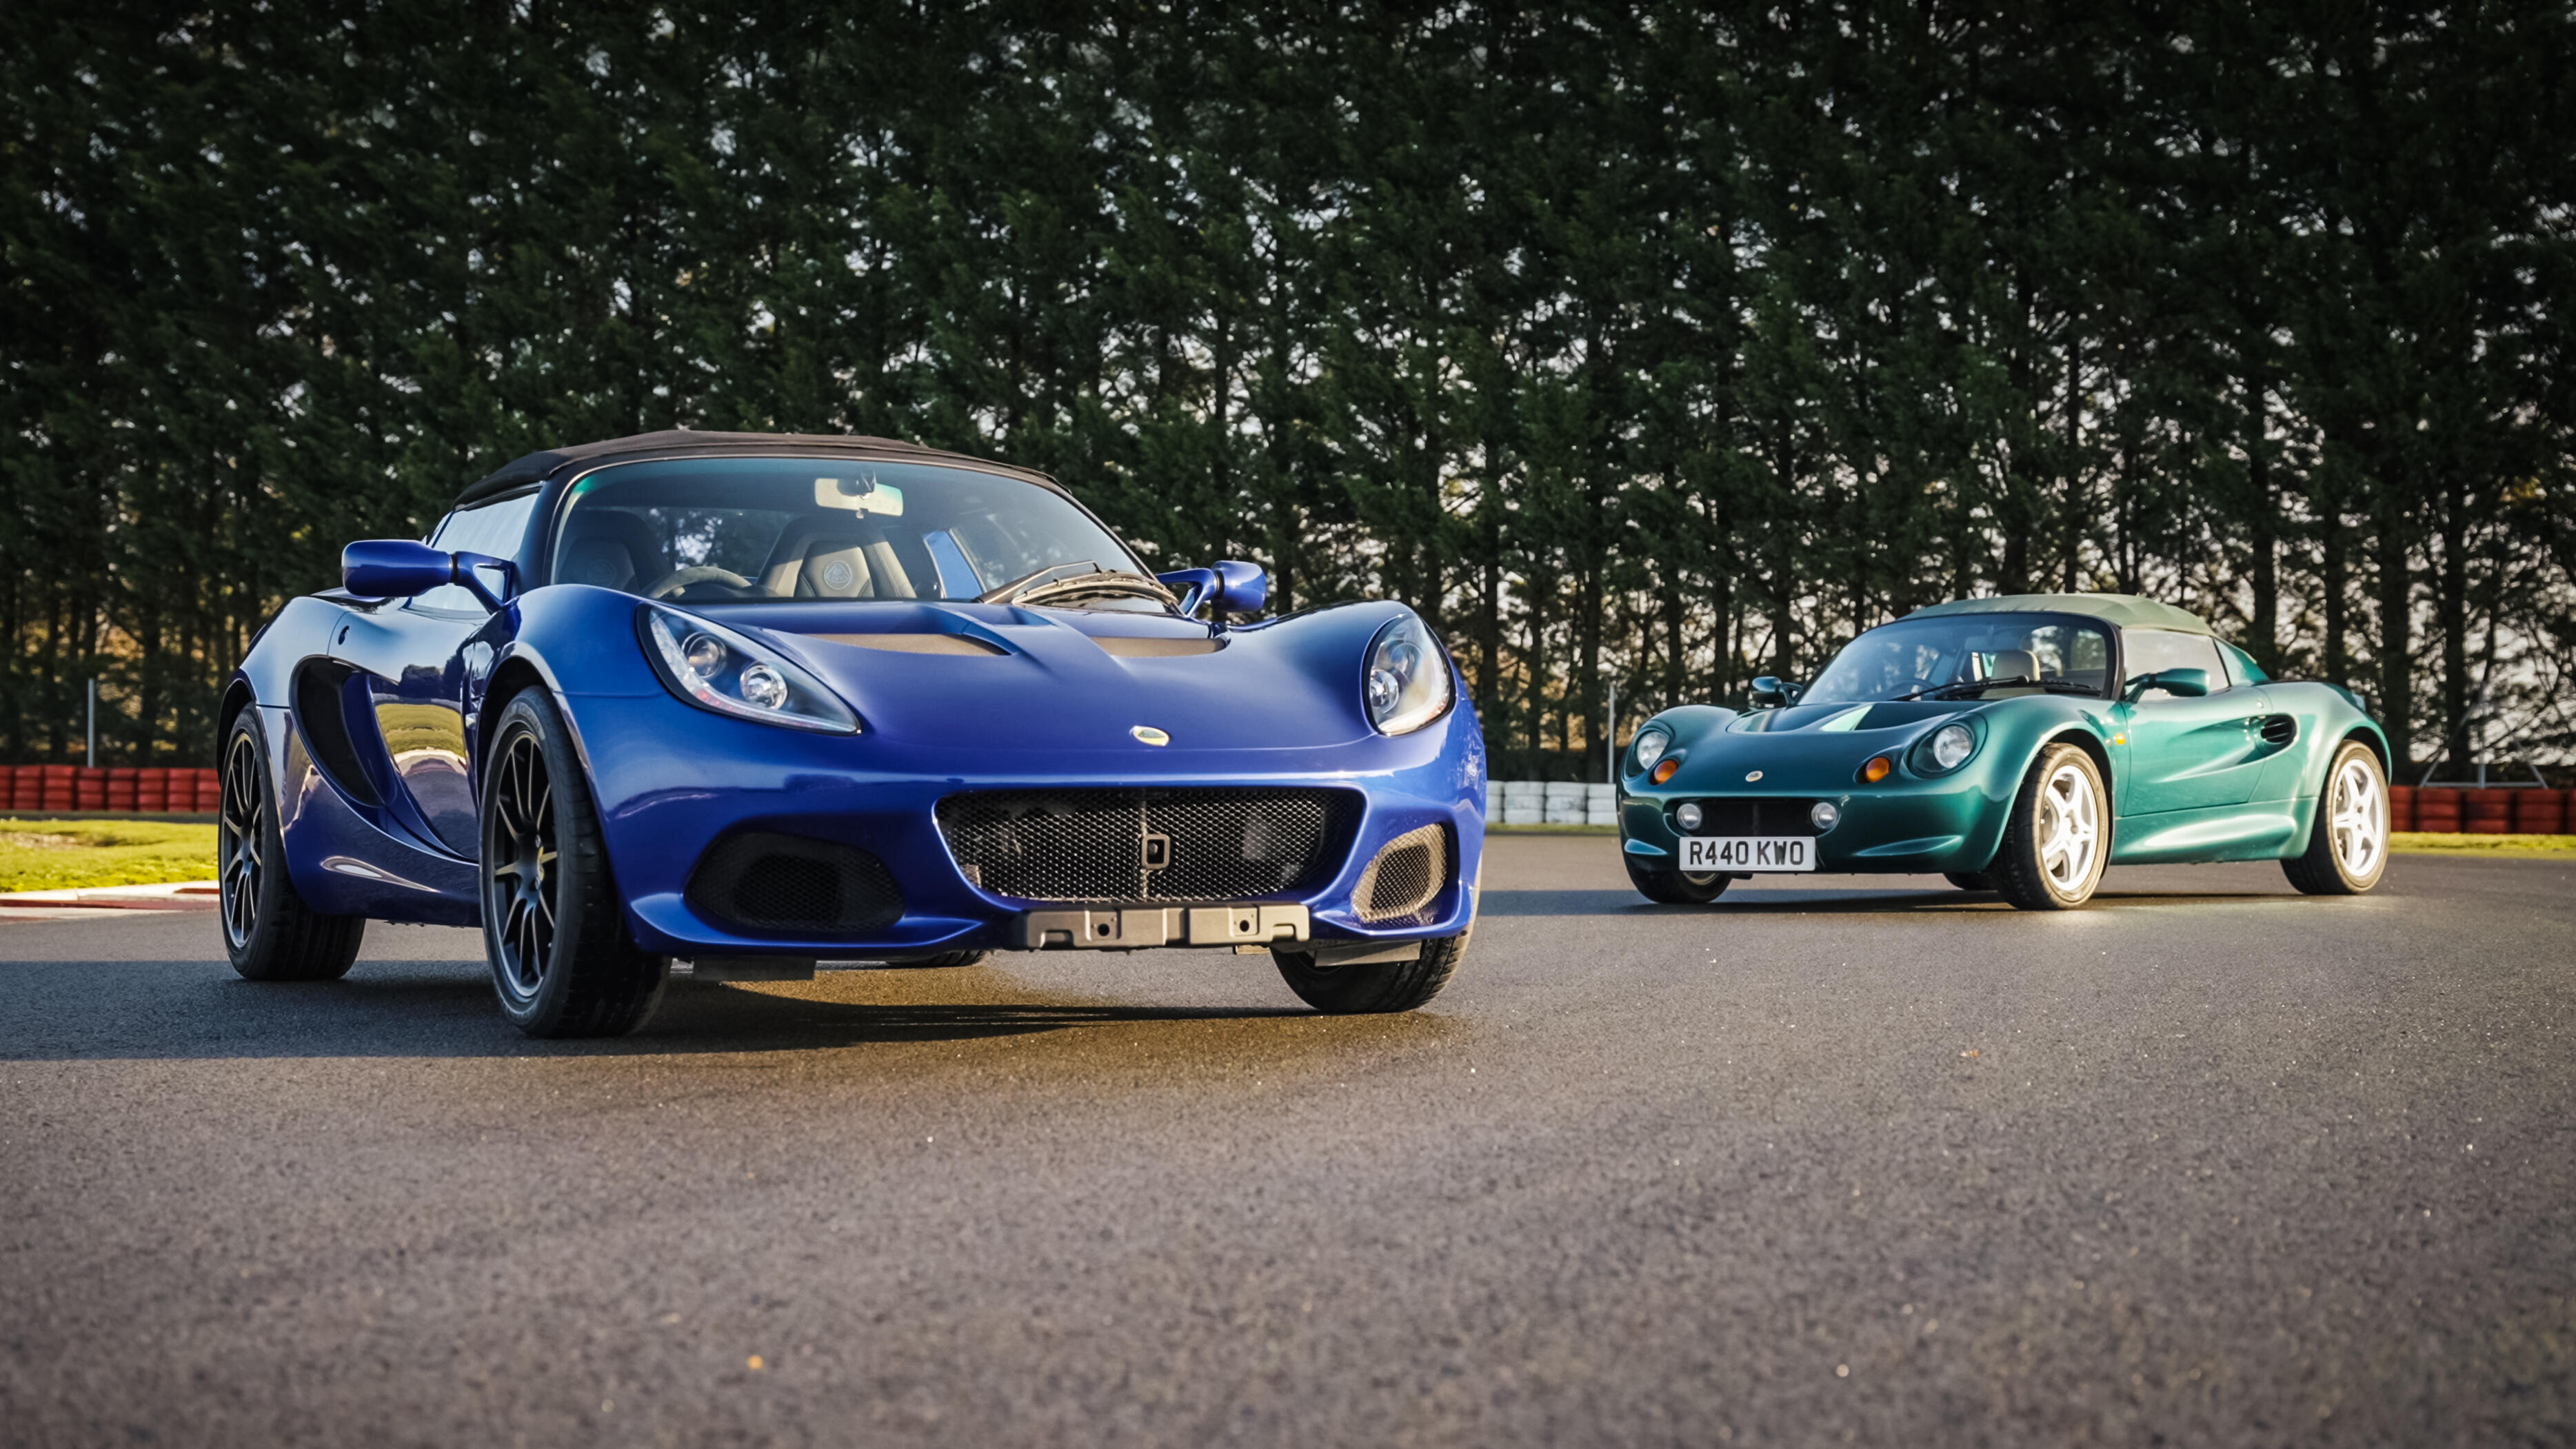 Video: Lotus Elise: Saying goodbye to an iconic British sports car